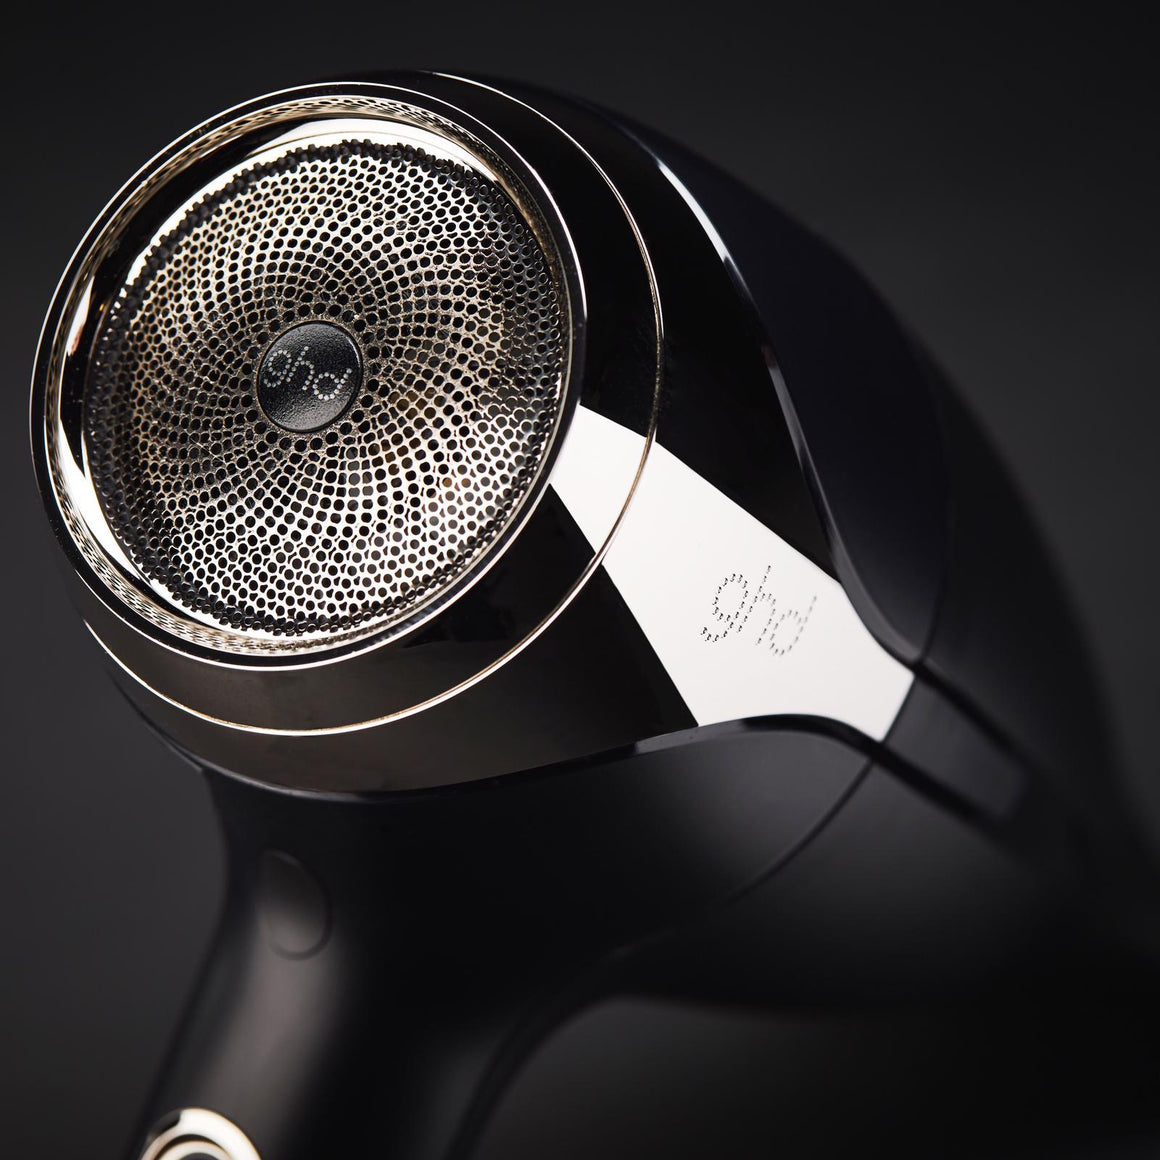 ghd Helios™ Professional Hair Dryer